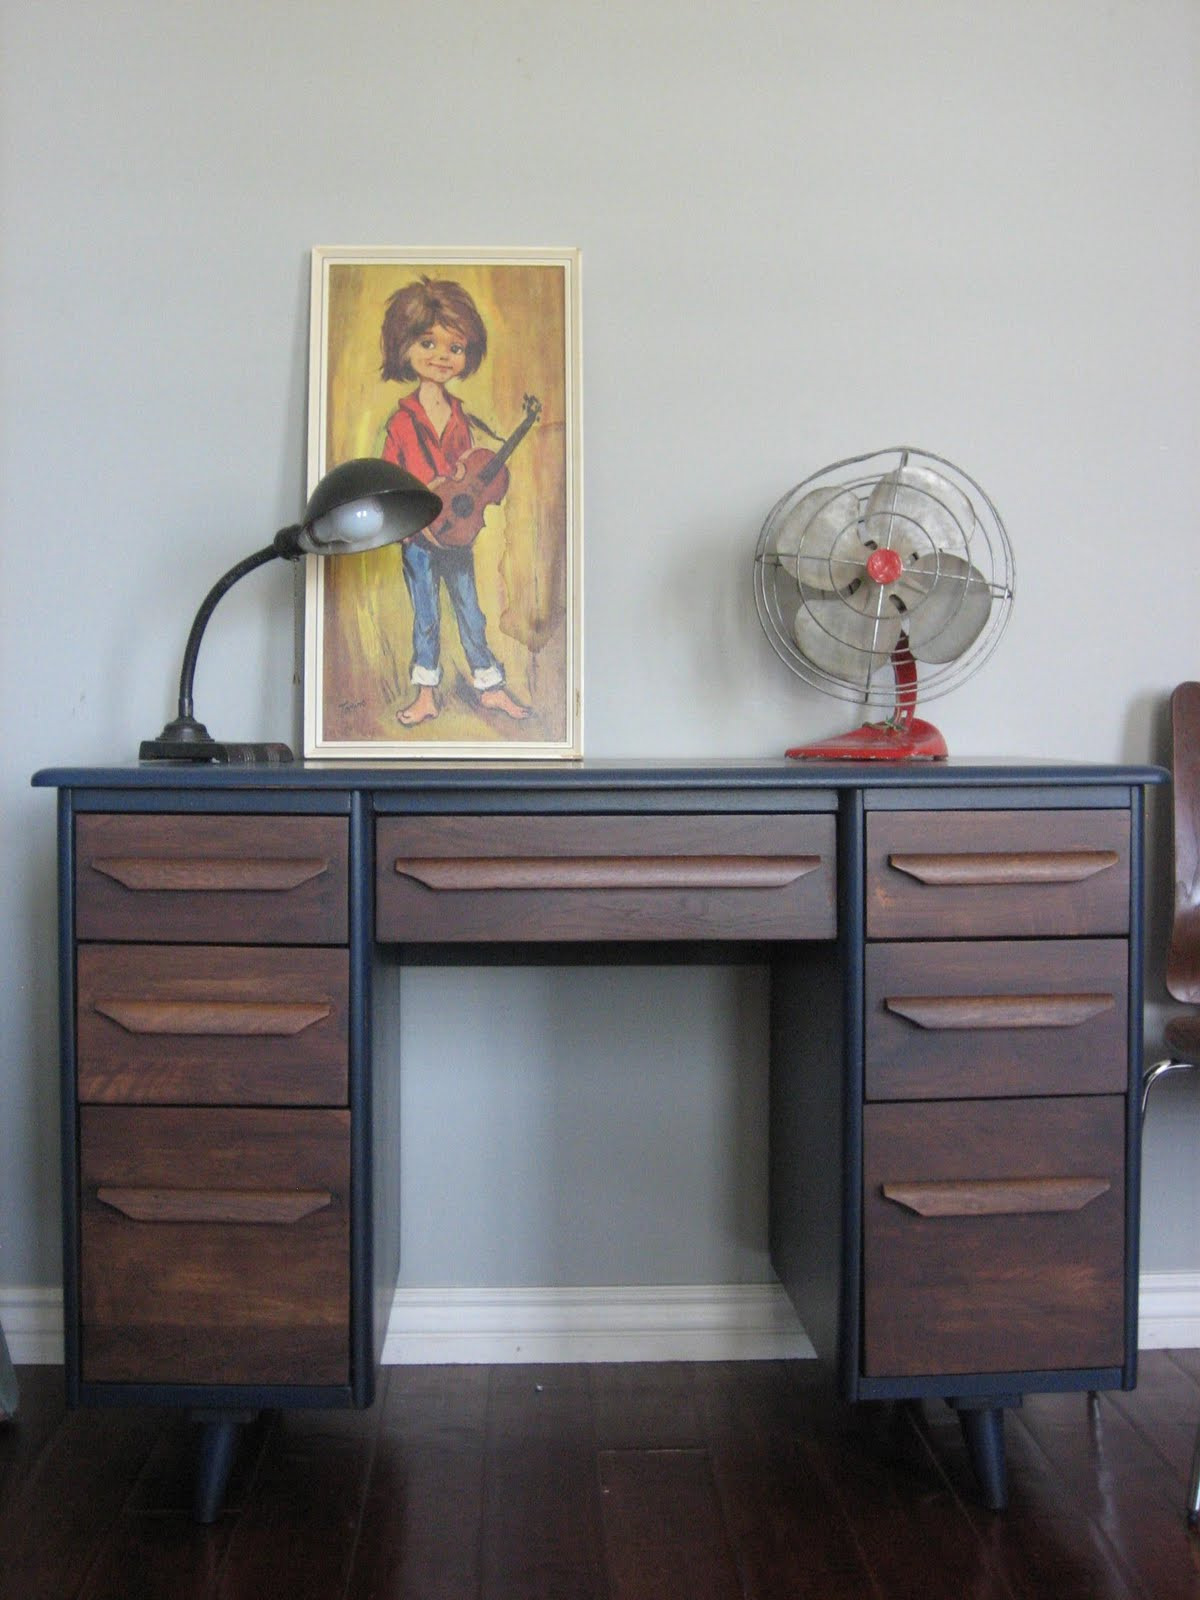 Craigslist Houston Antique Furniture Awesome Furniture Great Craigslist Phoenix Furniture by Owner for